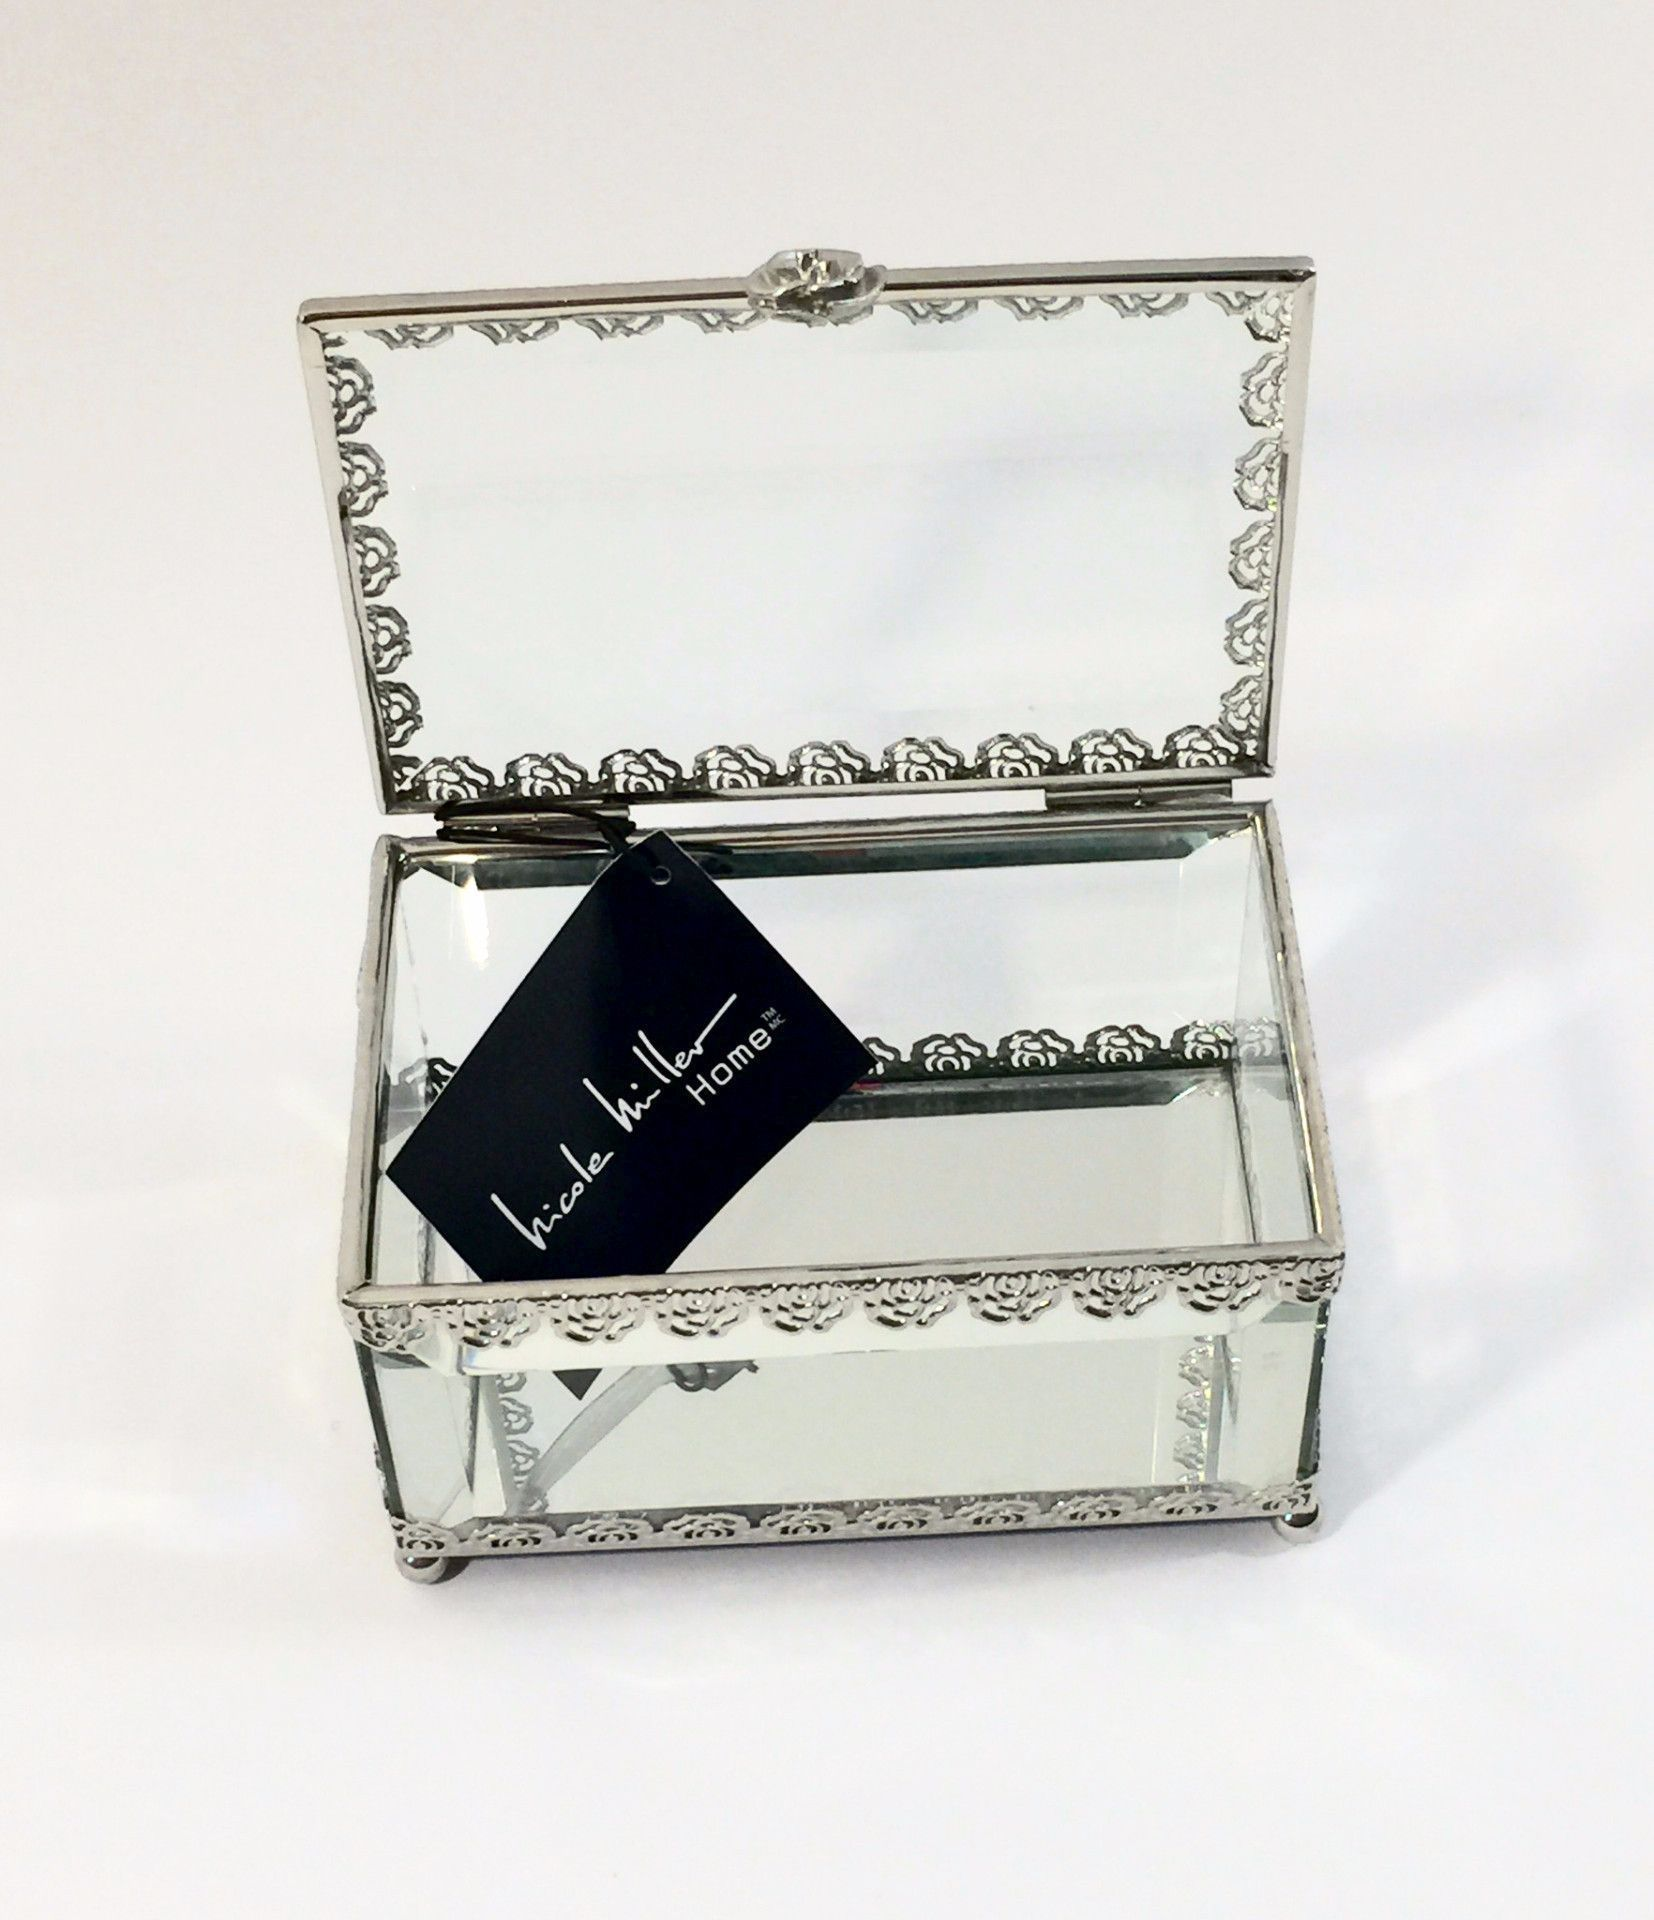 Nicole Miller Jewelry Box Magnificent Glass Jewelry Boxnicole Miller Home  Chic  Pinterest  Glass Design Decoration